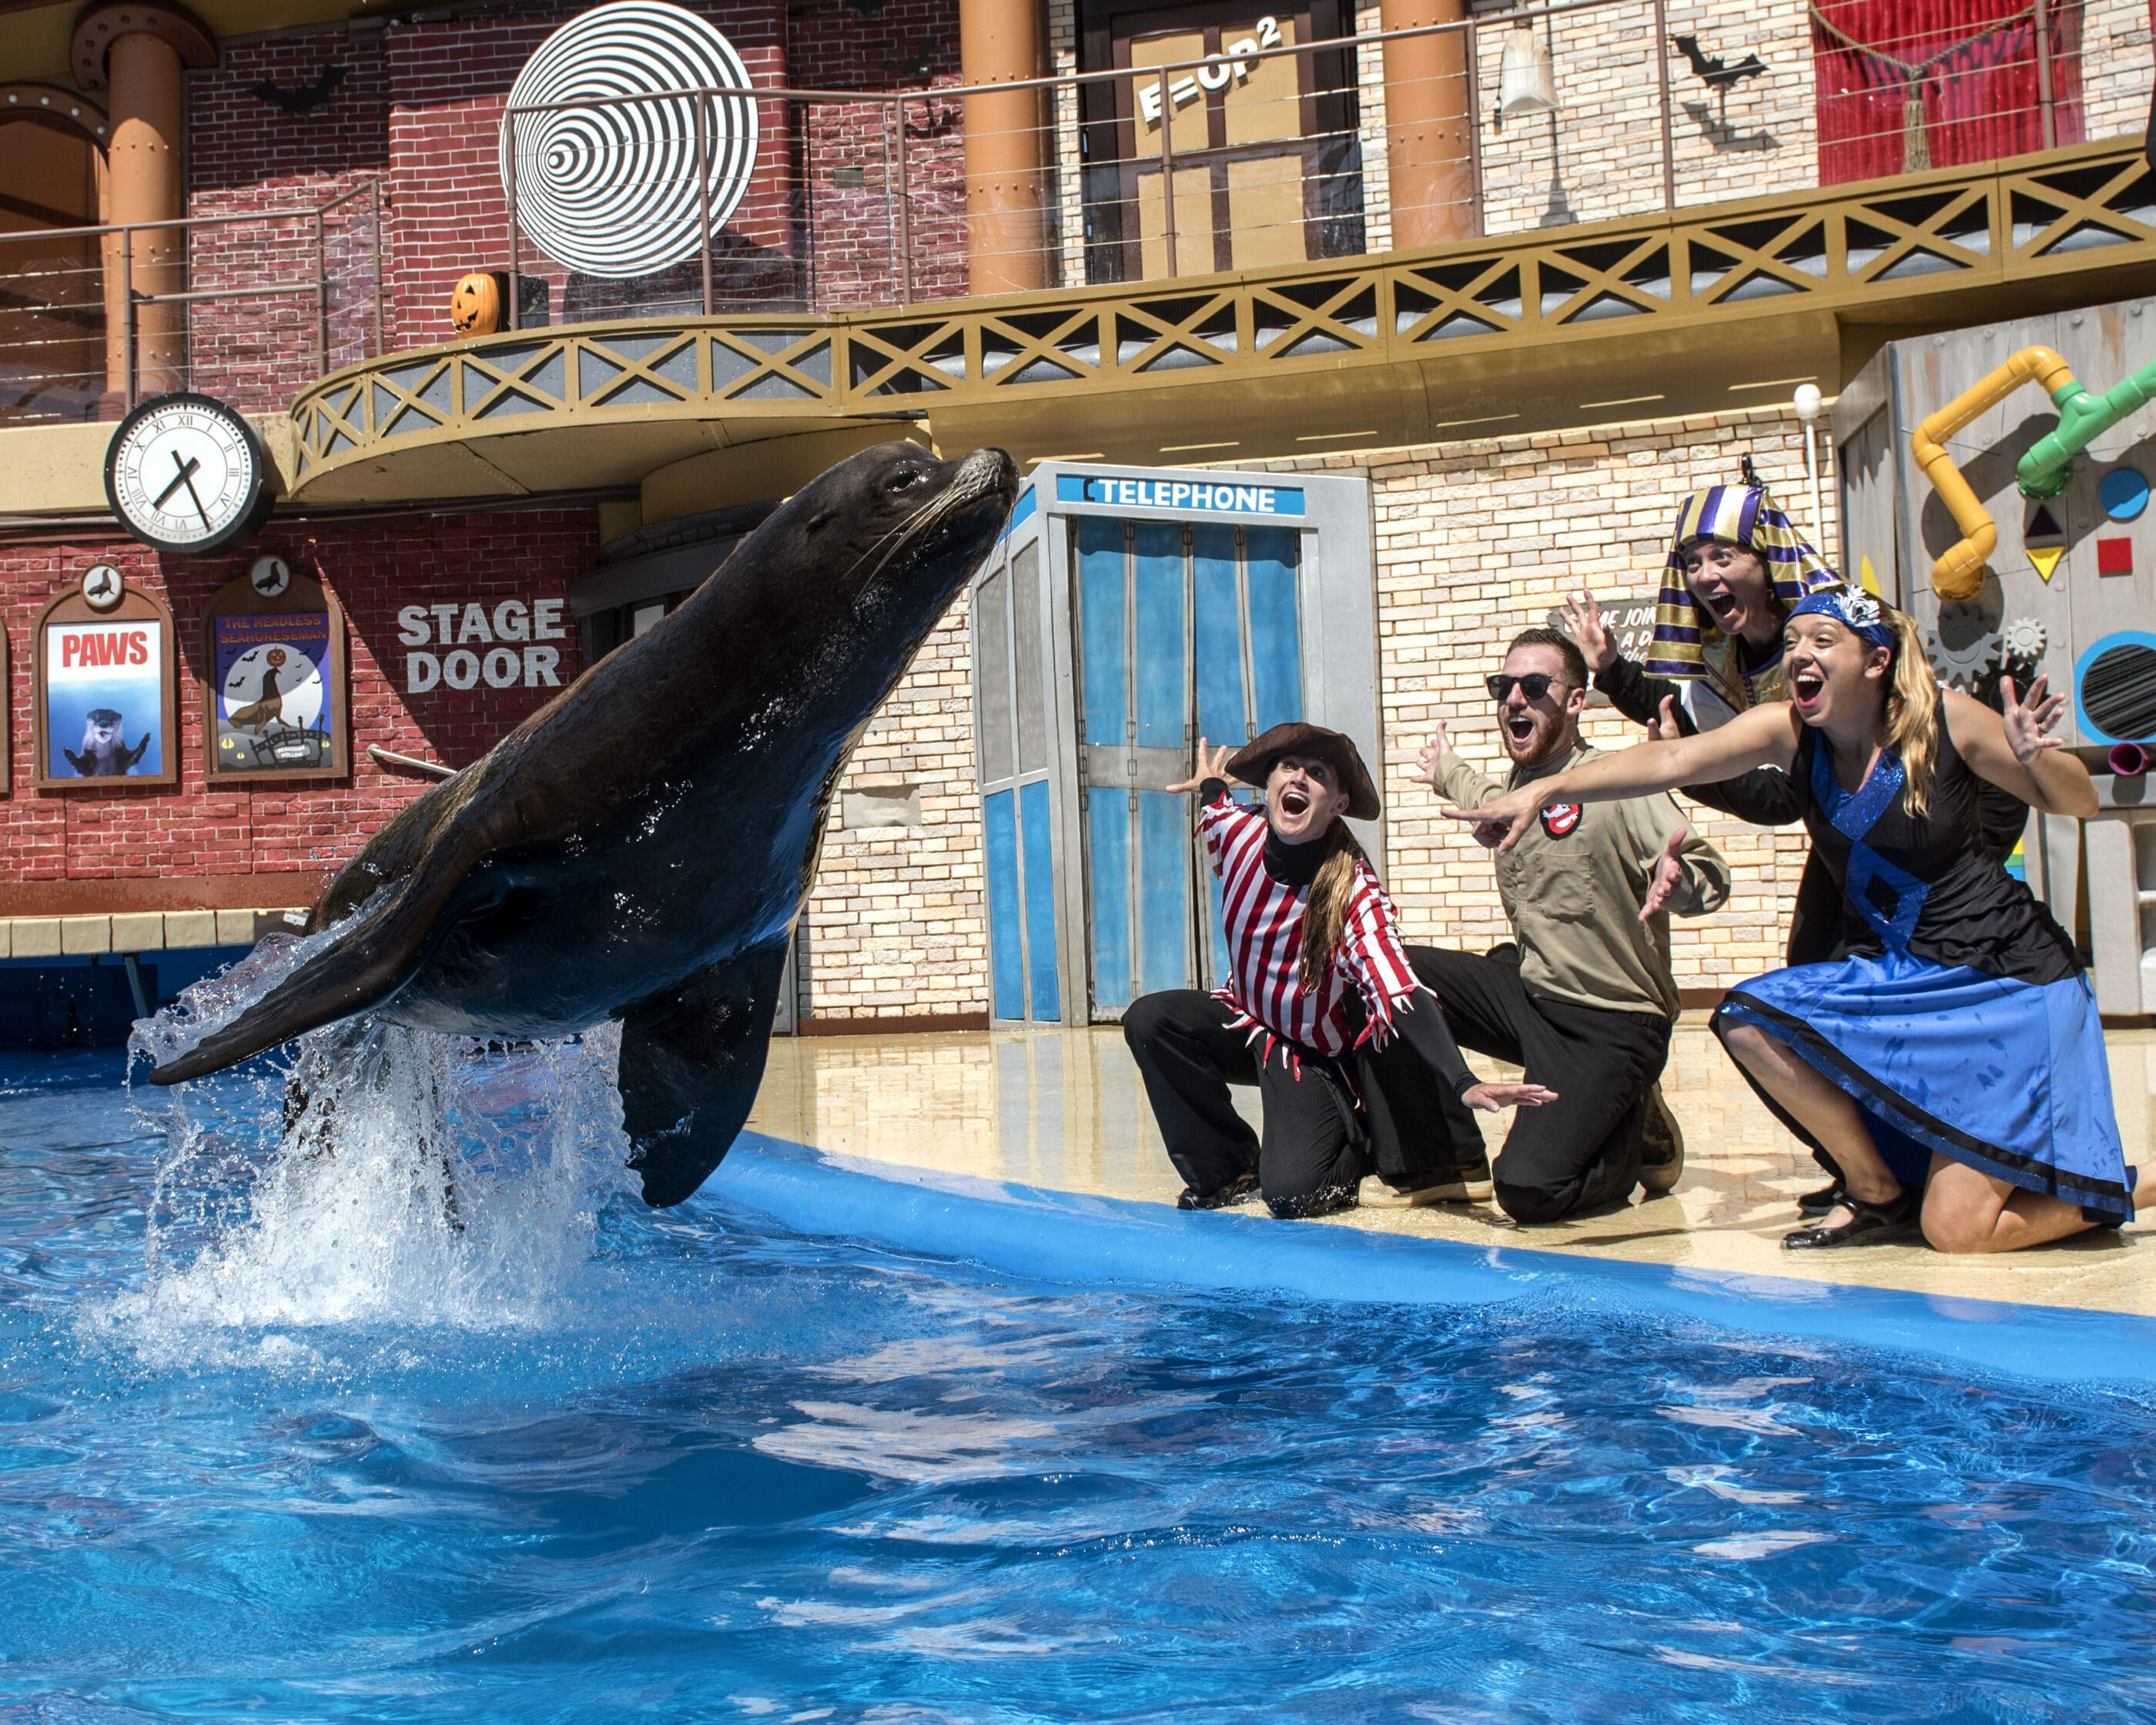 A sea lion jumps out of the water during a show as staff members in Halloween costumes cheer.